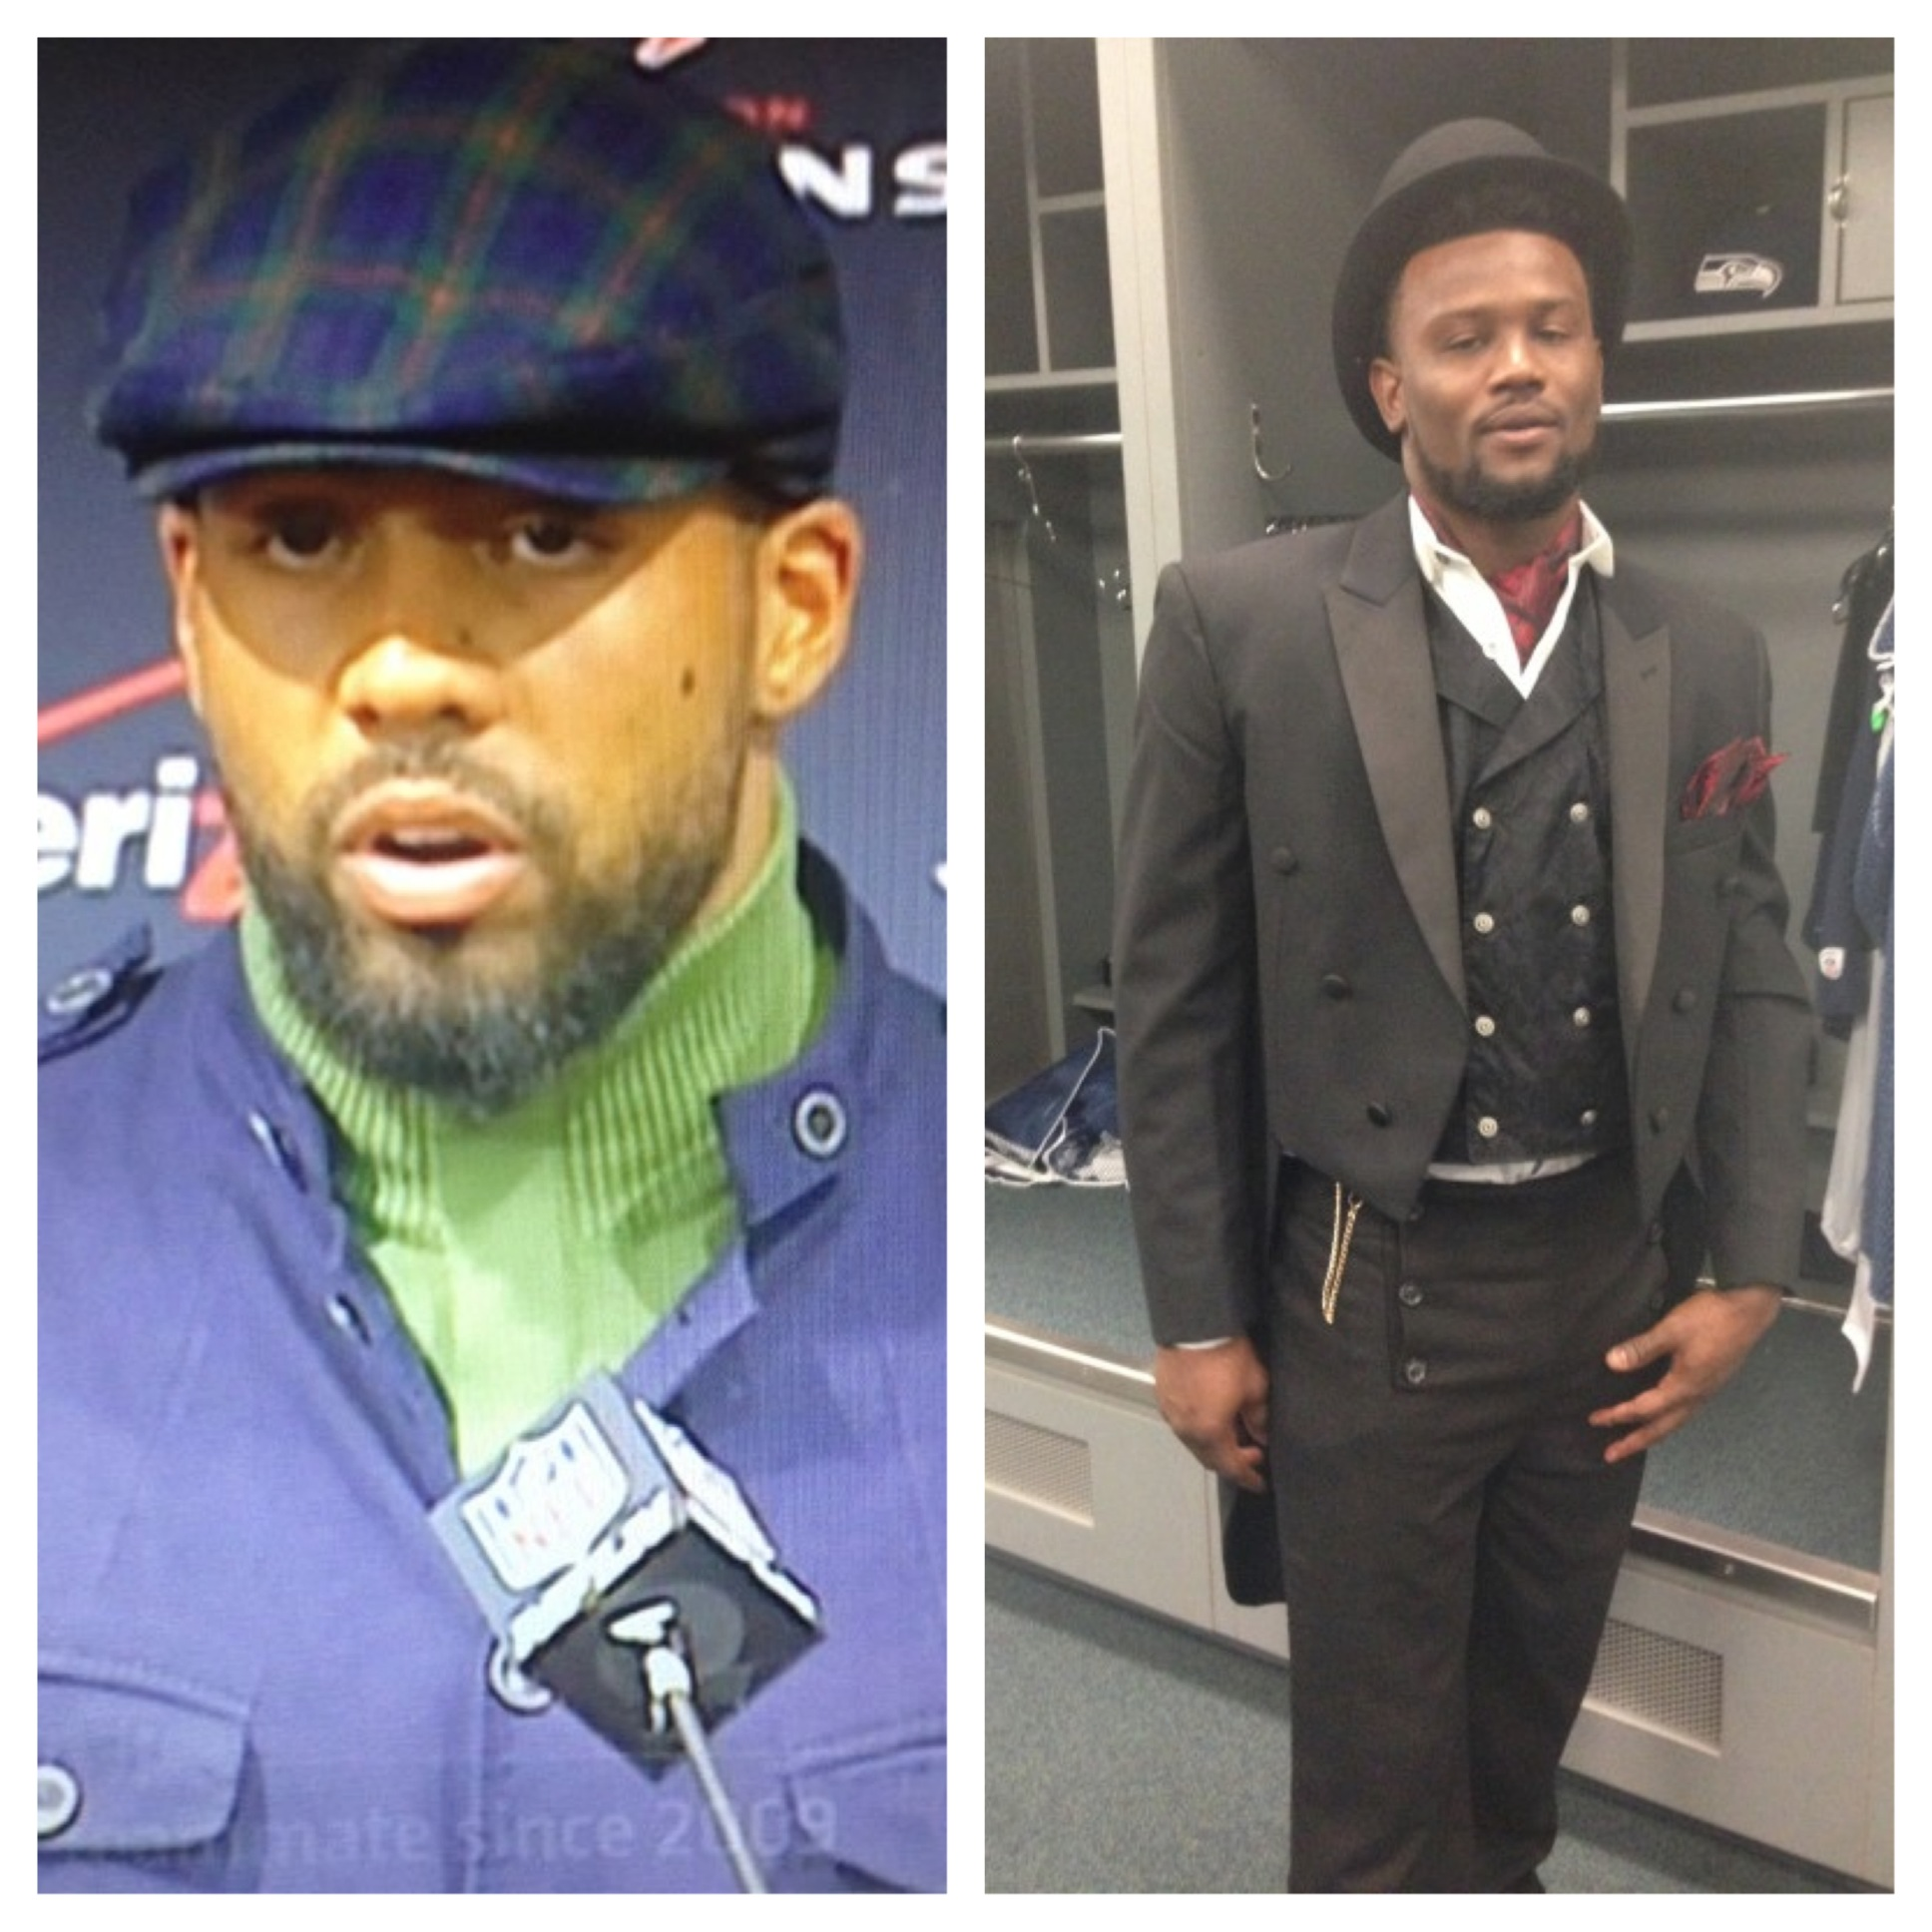 Arian-Foster-gameday-outfit-Walter-thurmond-III-gameday-outfit